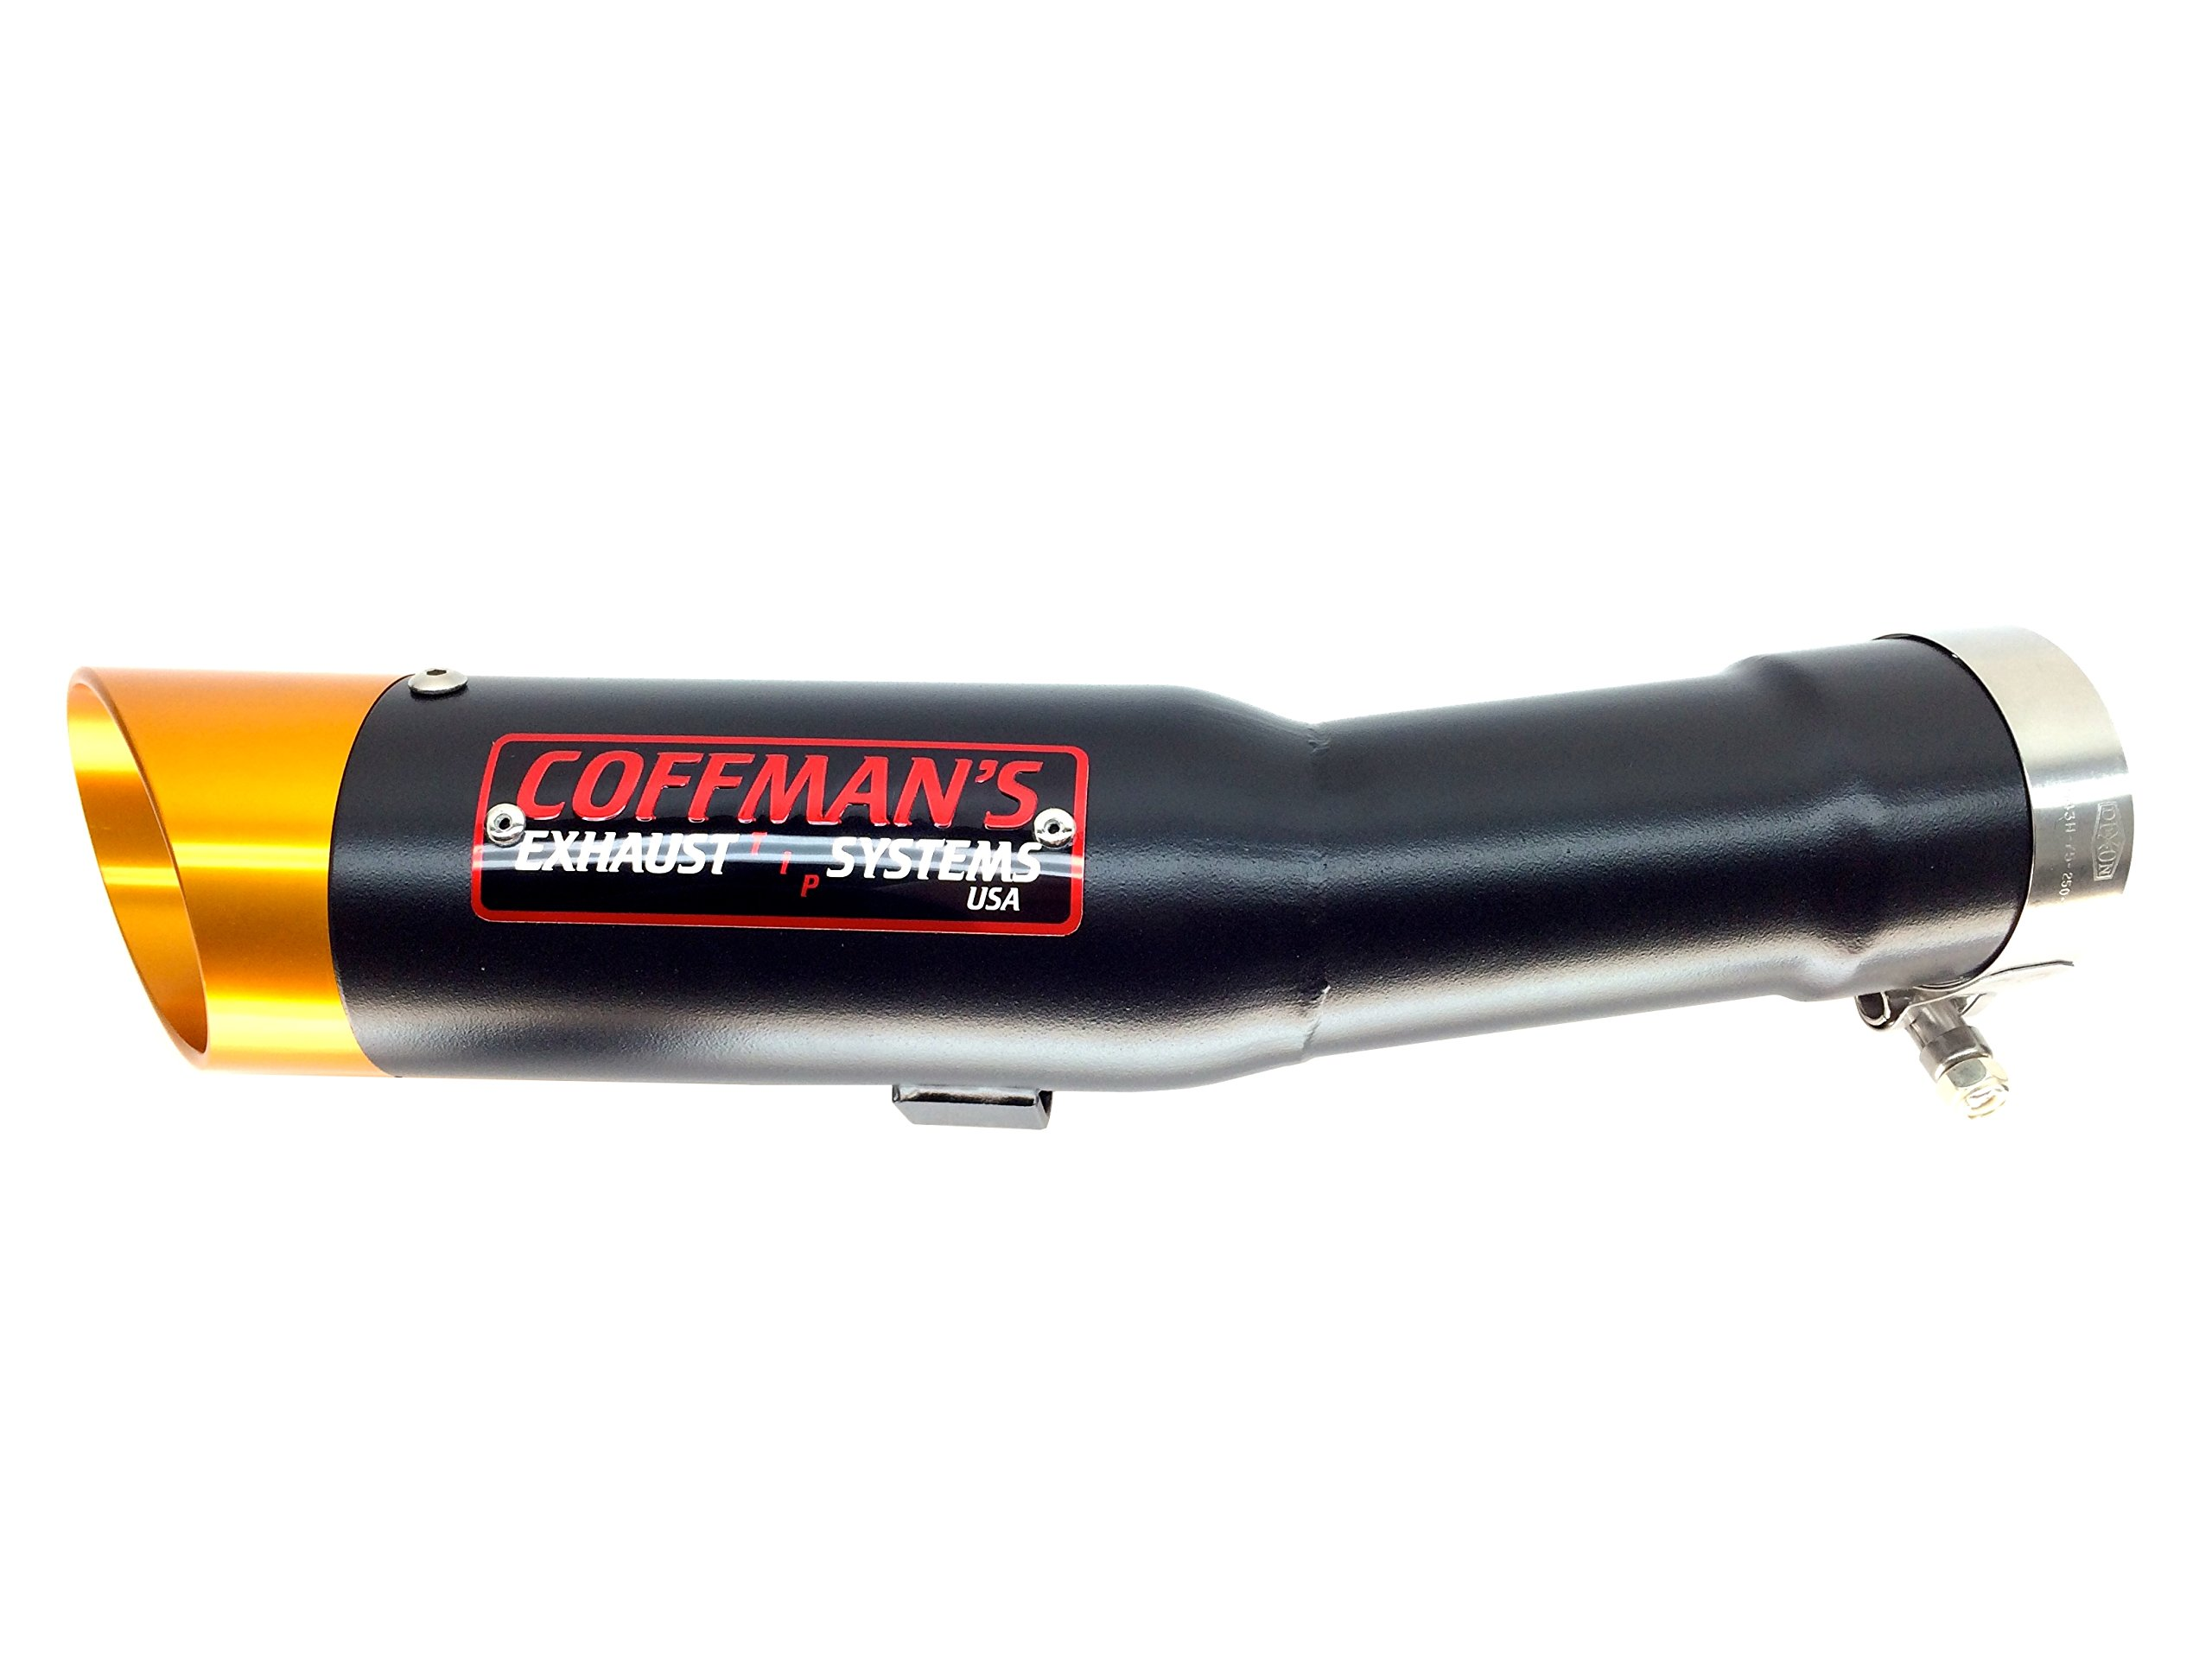 Coffman's Shorty Exhaust for Yamaha FZ1 (2006-15) Sportbike with Gold Tip